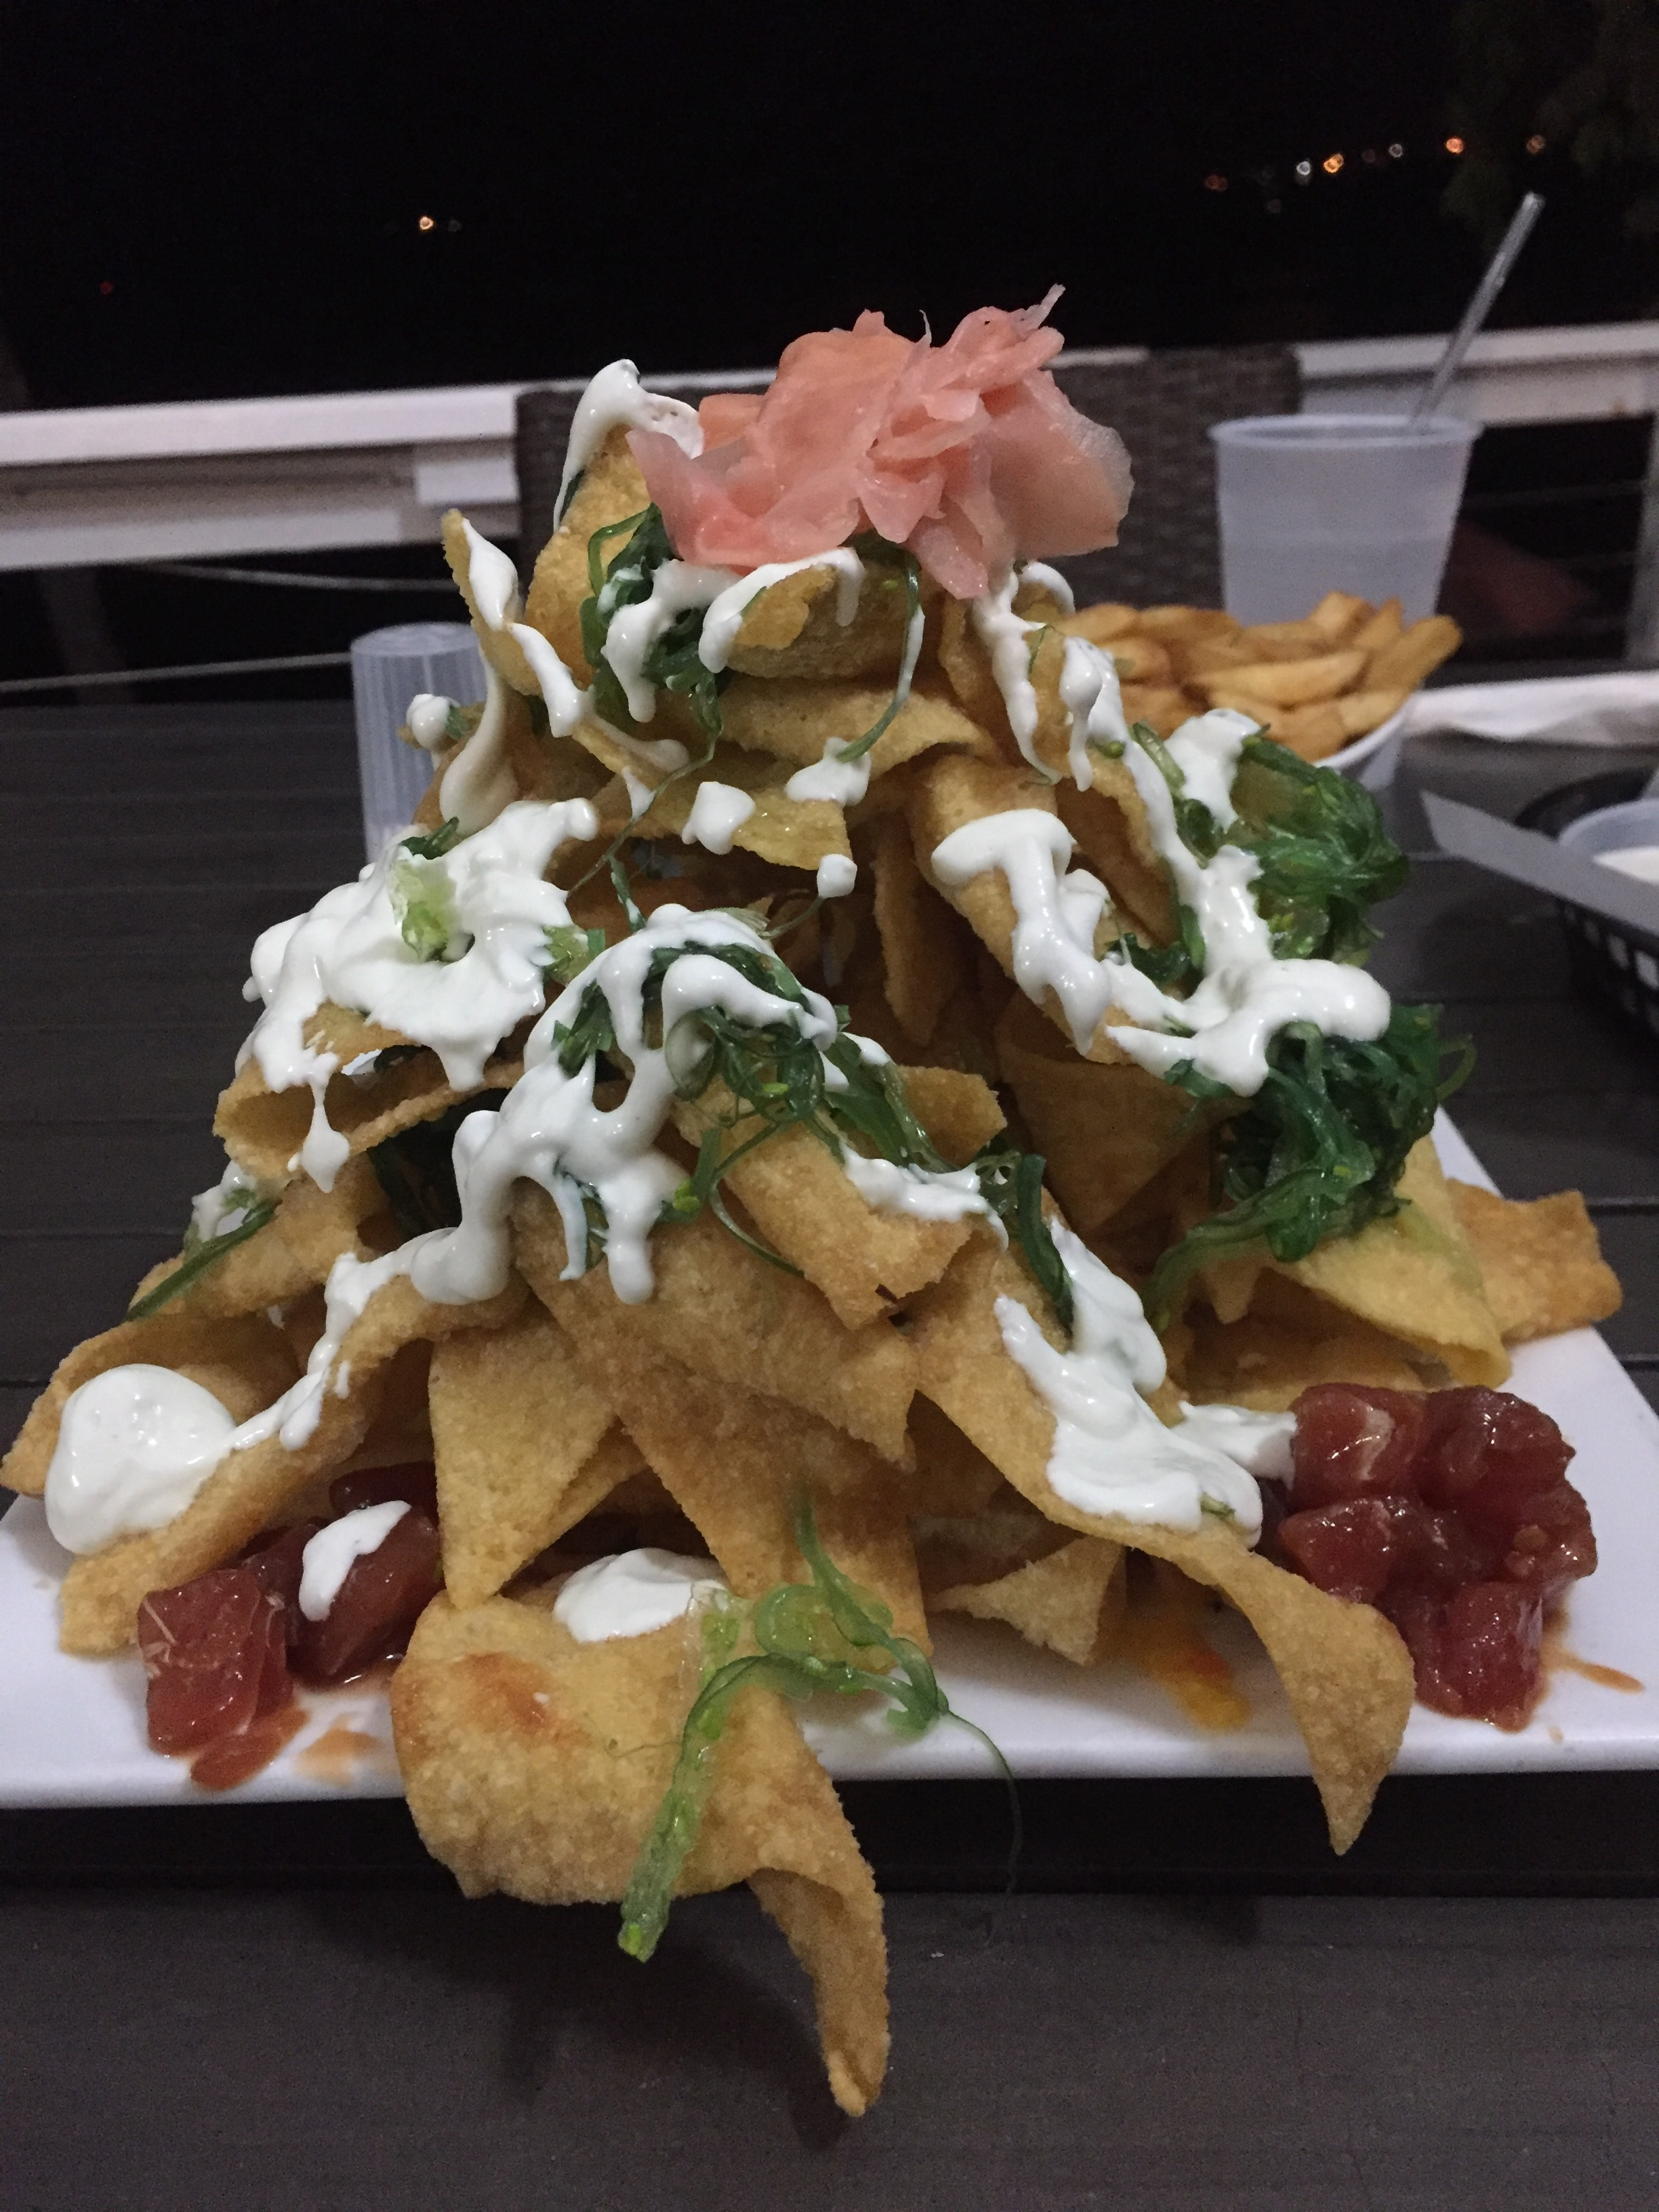 This is a half order of Ahi Nachos. It's as large as it looks.